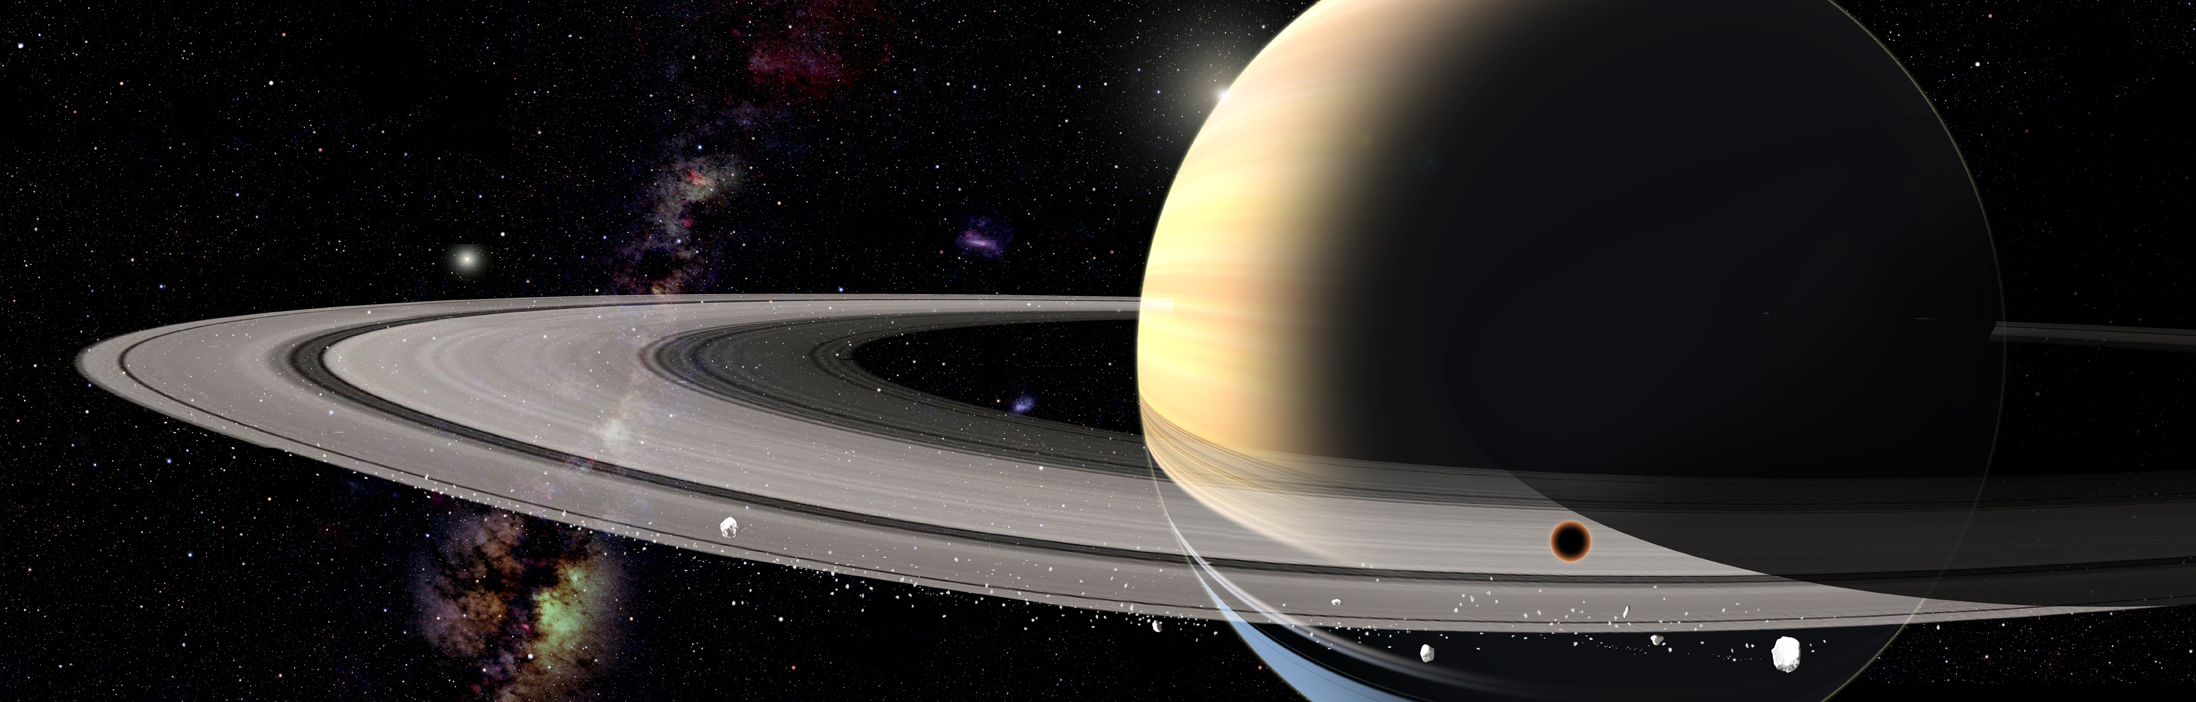 Grand View of Saturn